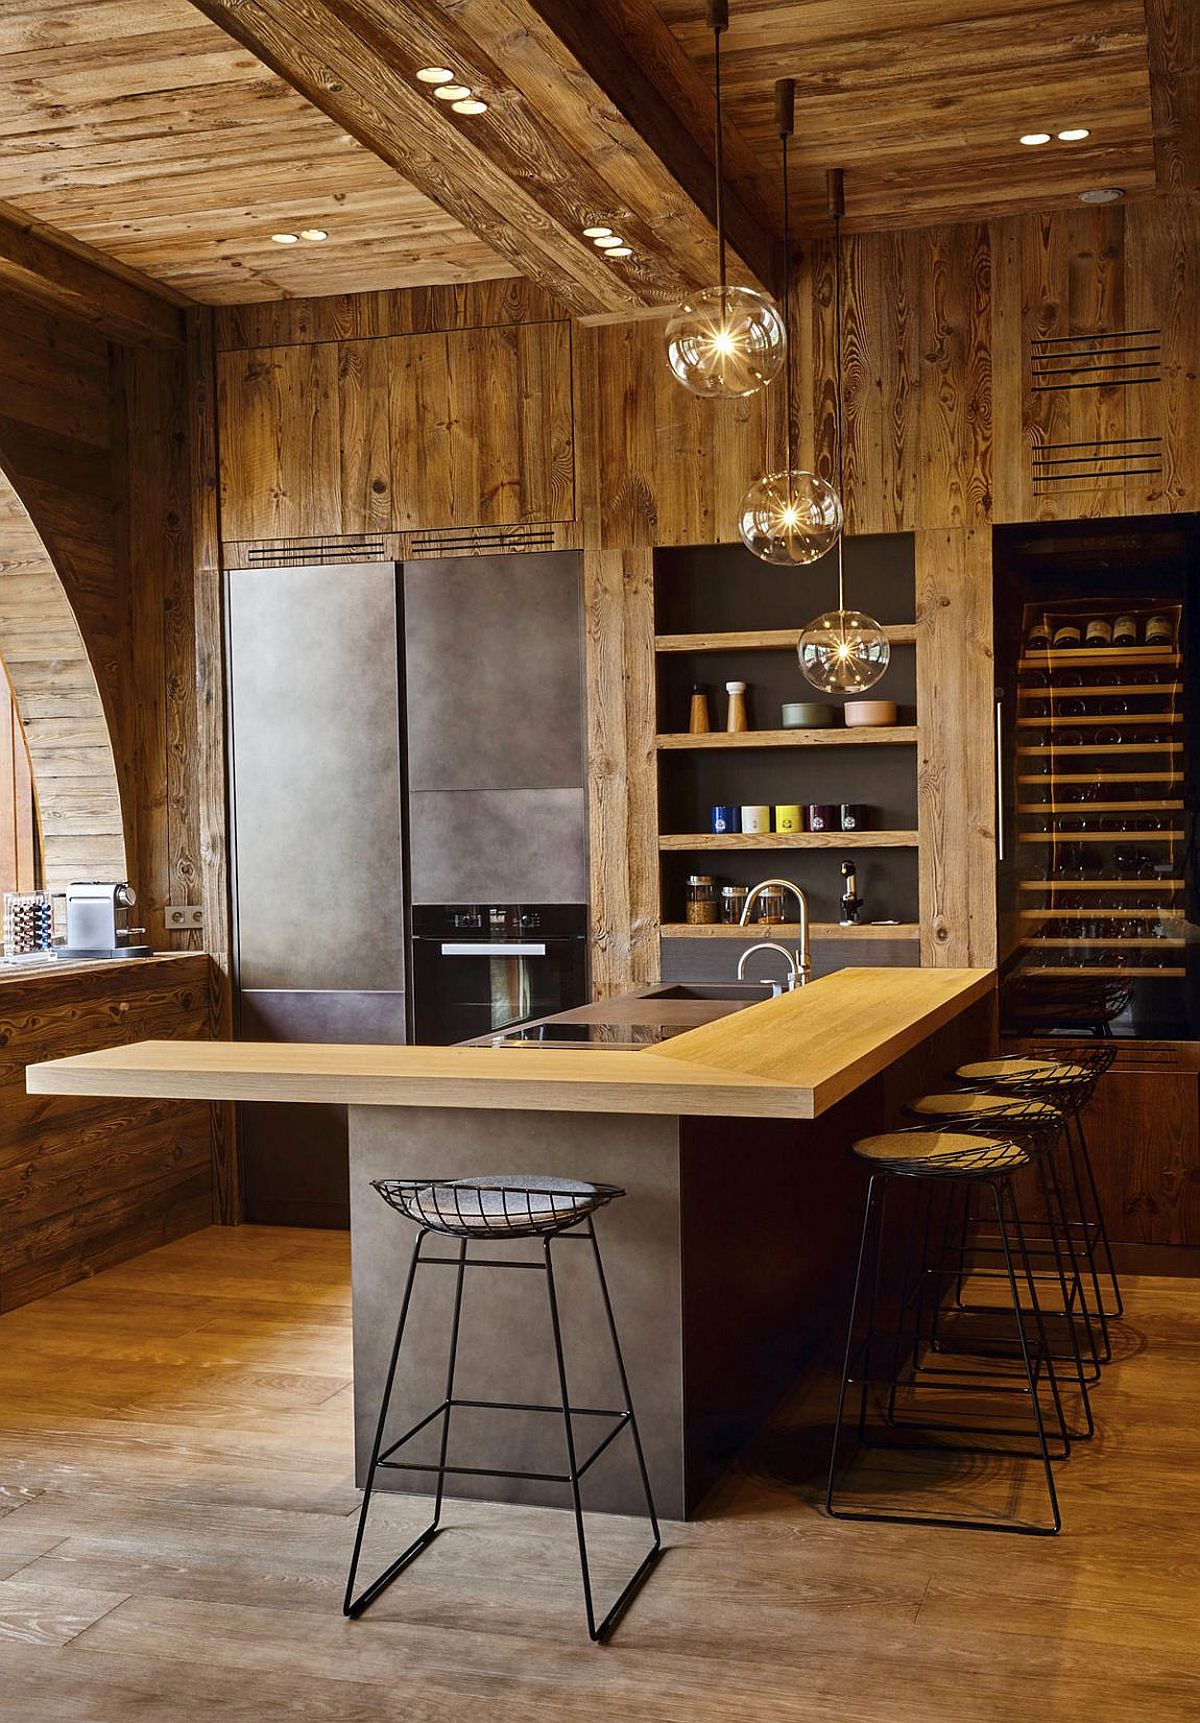 Recessed-lighting-coupled-with-sparkling-pendants-for-the-rustic-modern-kitchen